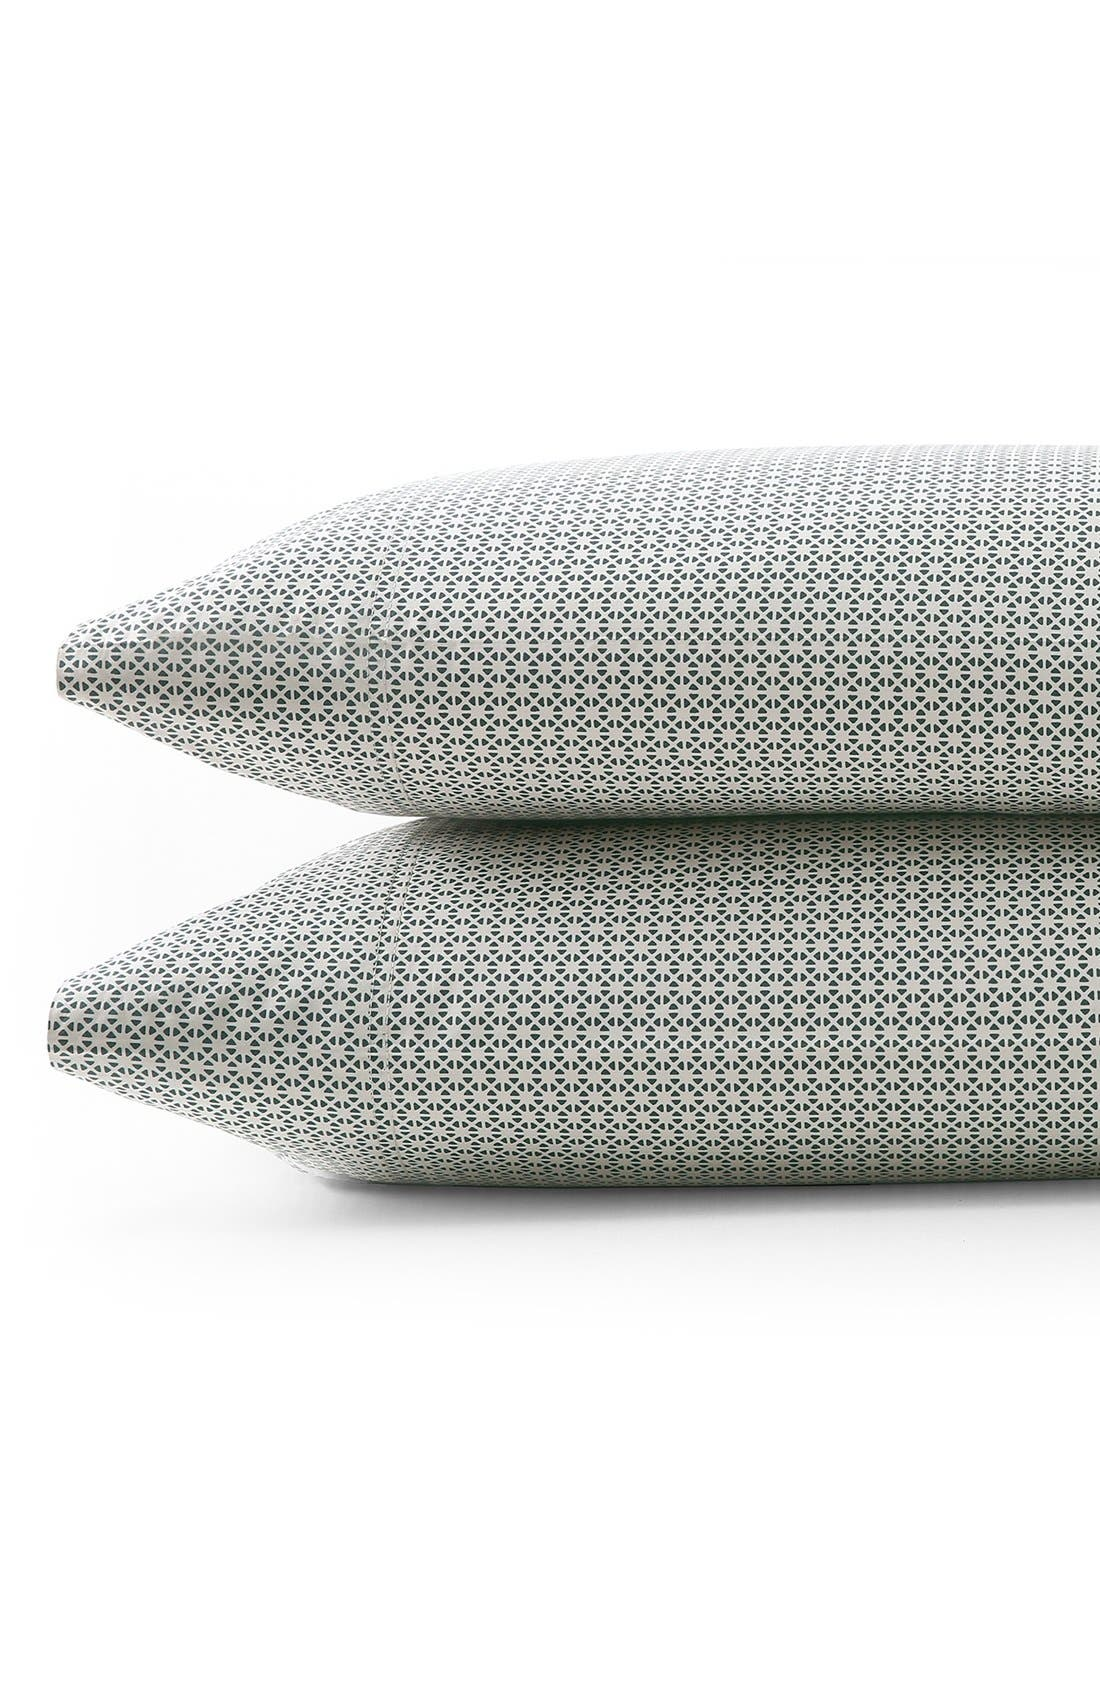 DwellStudio 'Fez' 300 Thread Count Pillowcases